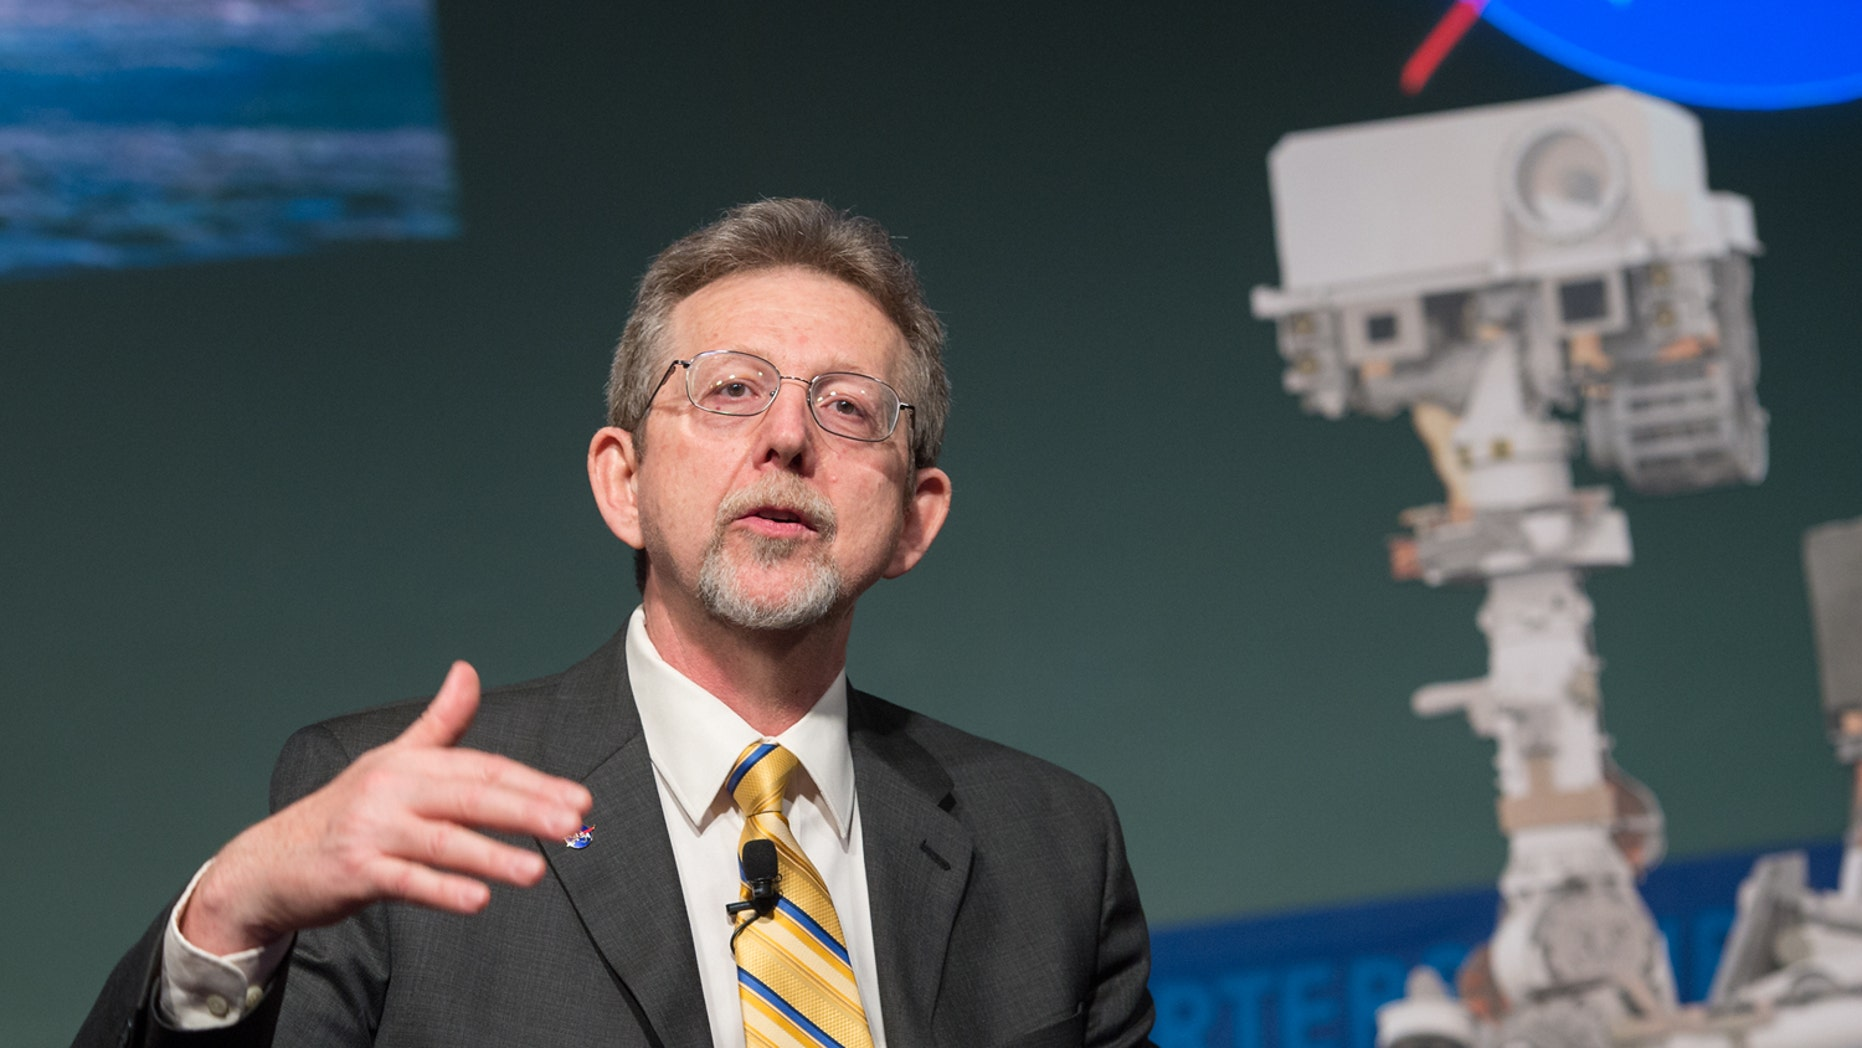 Jim Green, the head of NASA's Planetary Science Division shown here in 2013 at the first anniversary of the Mars rover Curiosity's landing, will become NASA chief scientist beginning May 1, 2018.